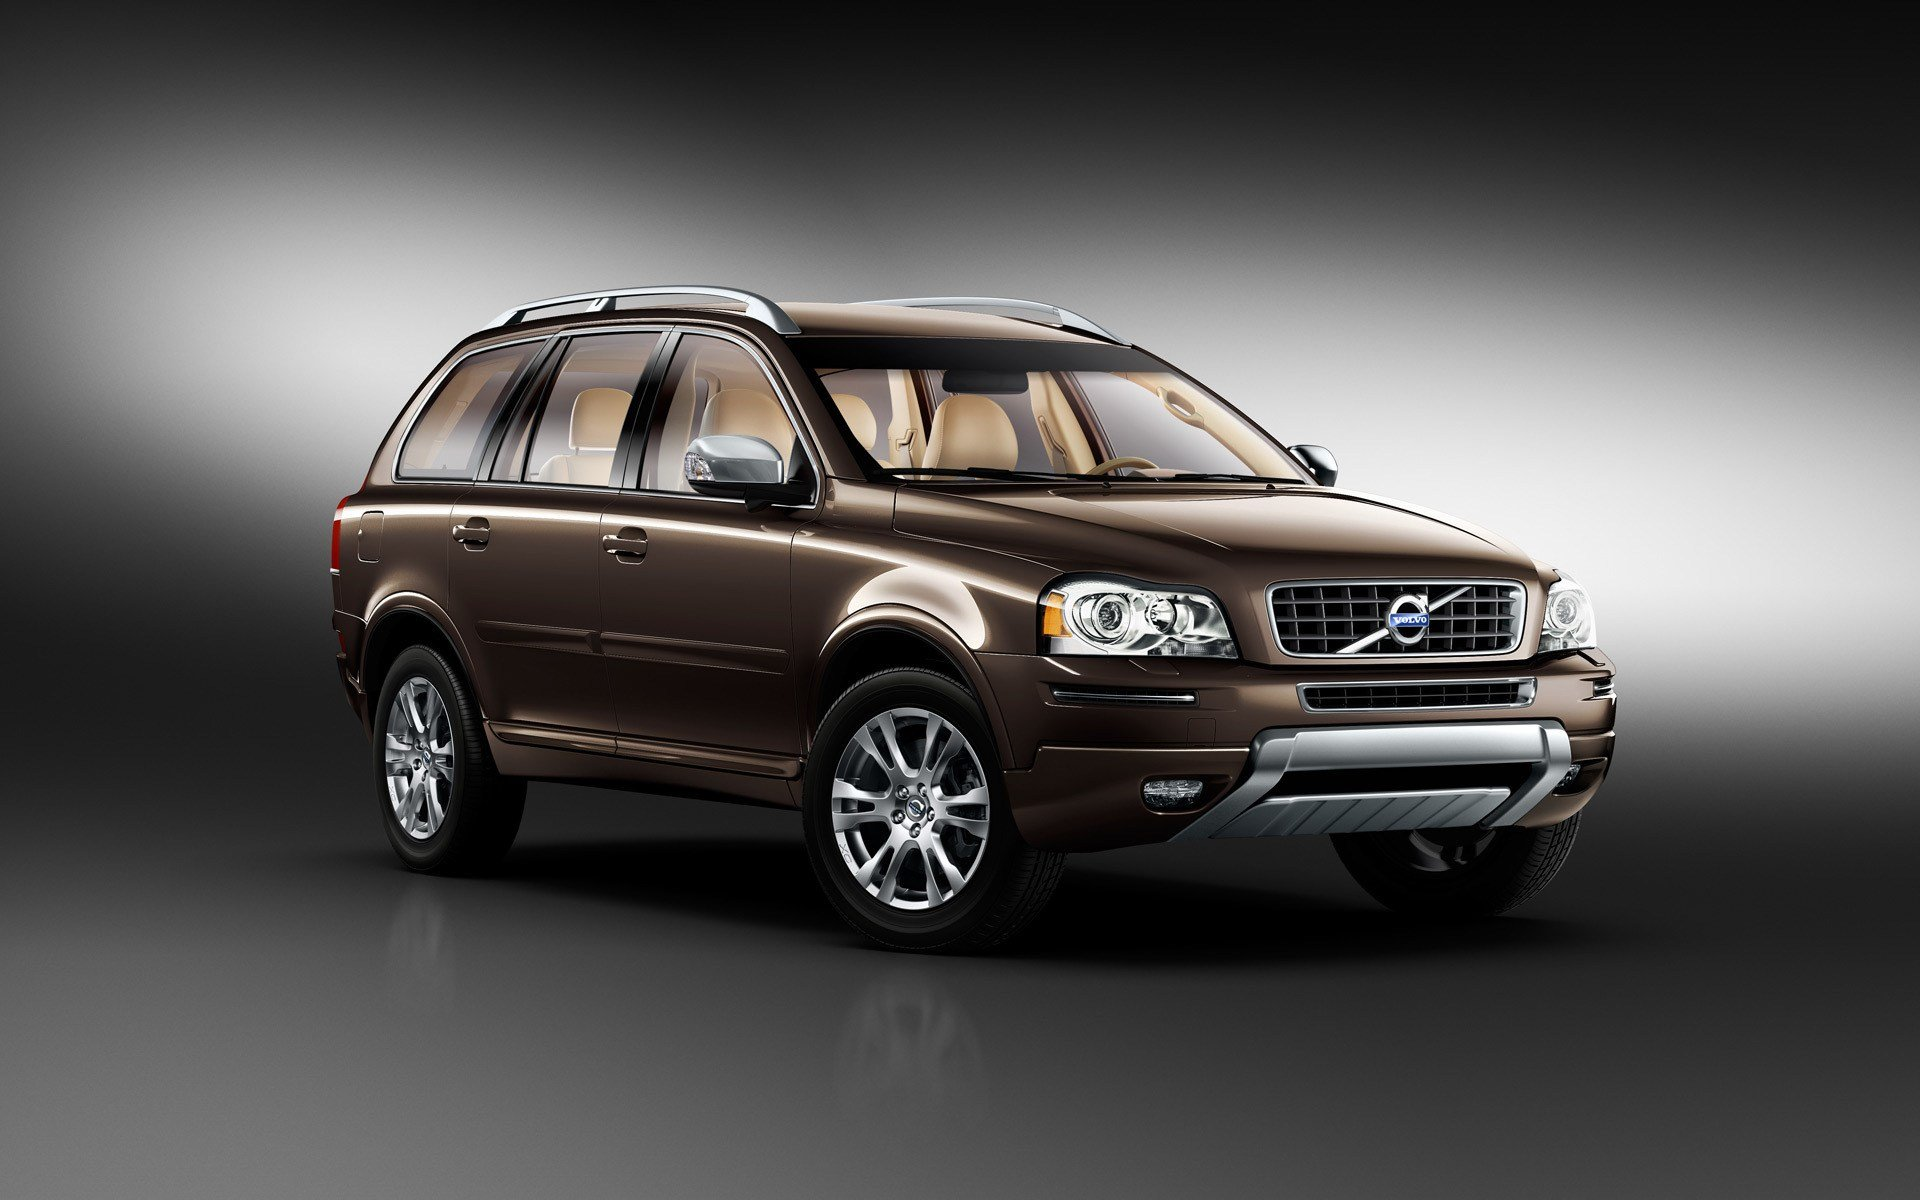 Latest All New Volvo Xc90 To Be Launched On August 27 Free Download